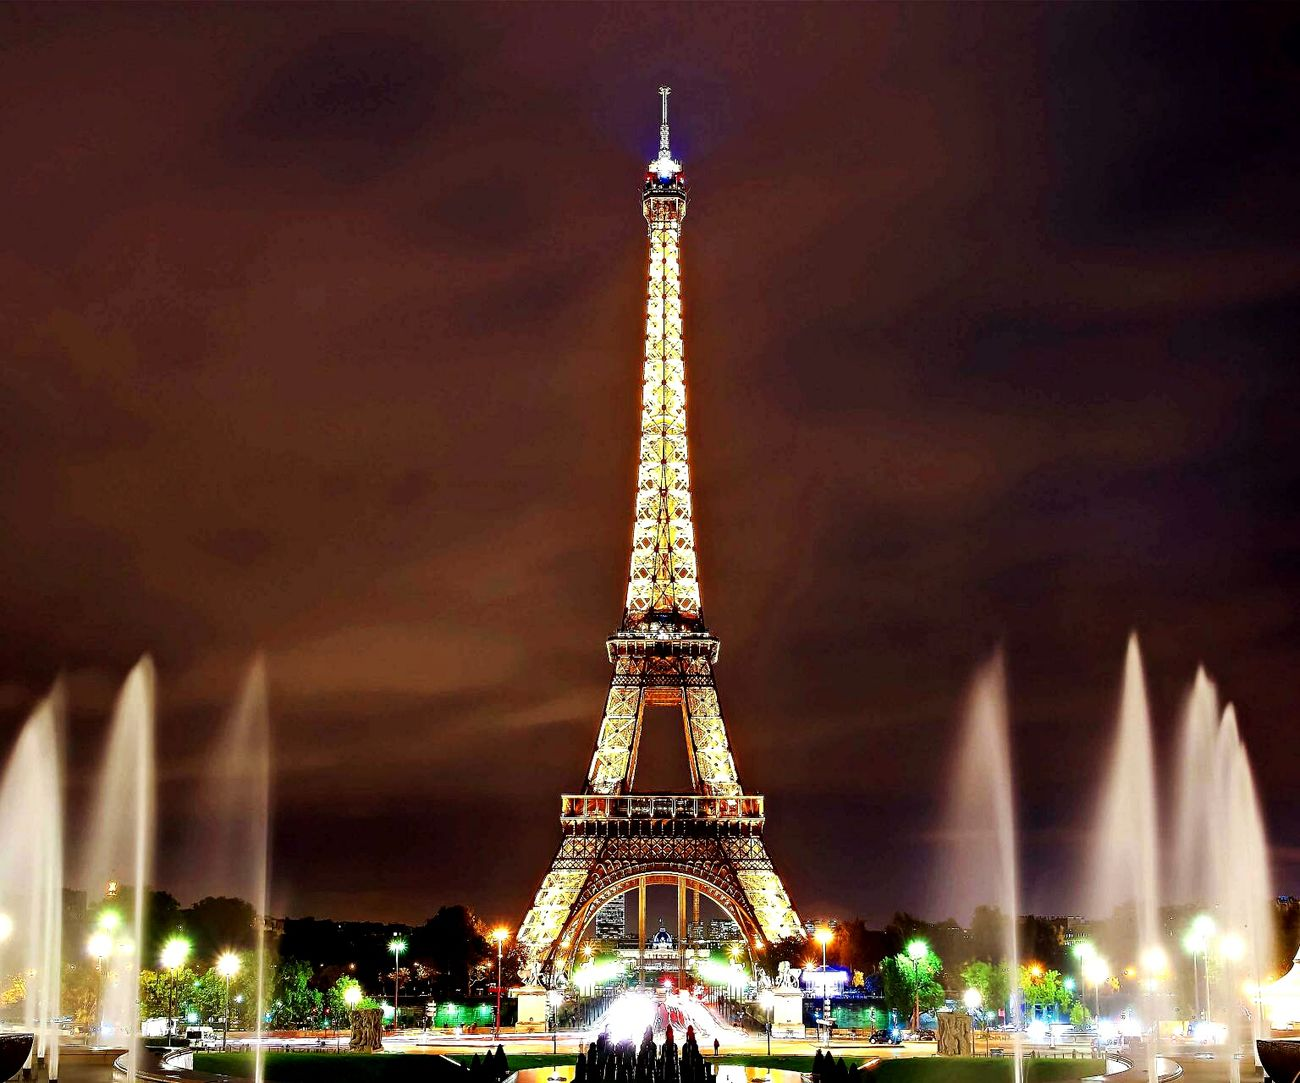 Paris Travel Destinations City Christmas Tree Cultures Celebration Christmas Tower Tree Architecture No People Christmas Decoration Sky Illuminated Cityscape Night Representing Outdoors First Eyeem Photo